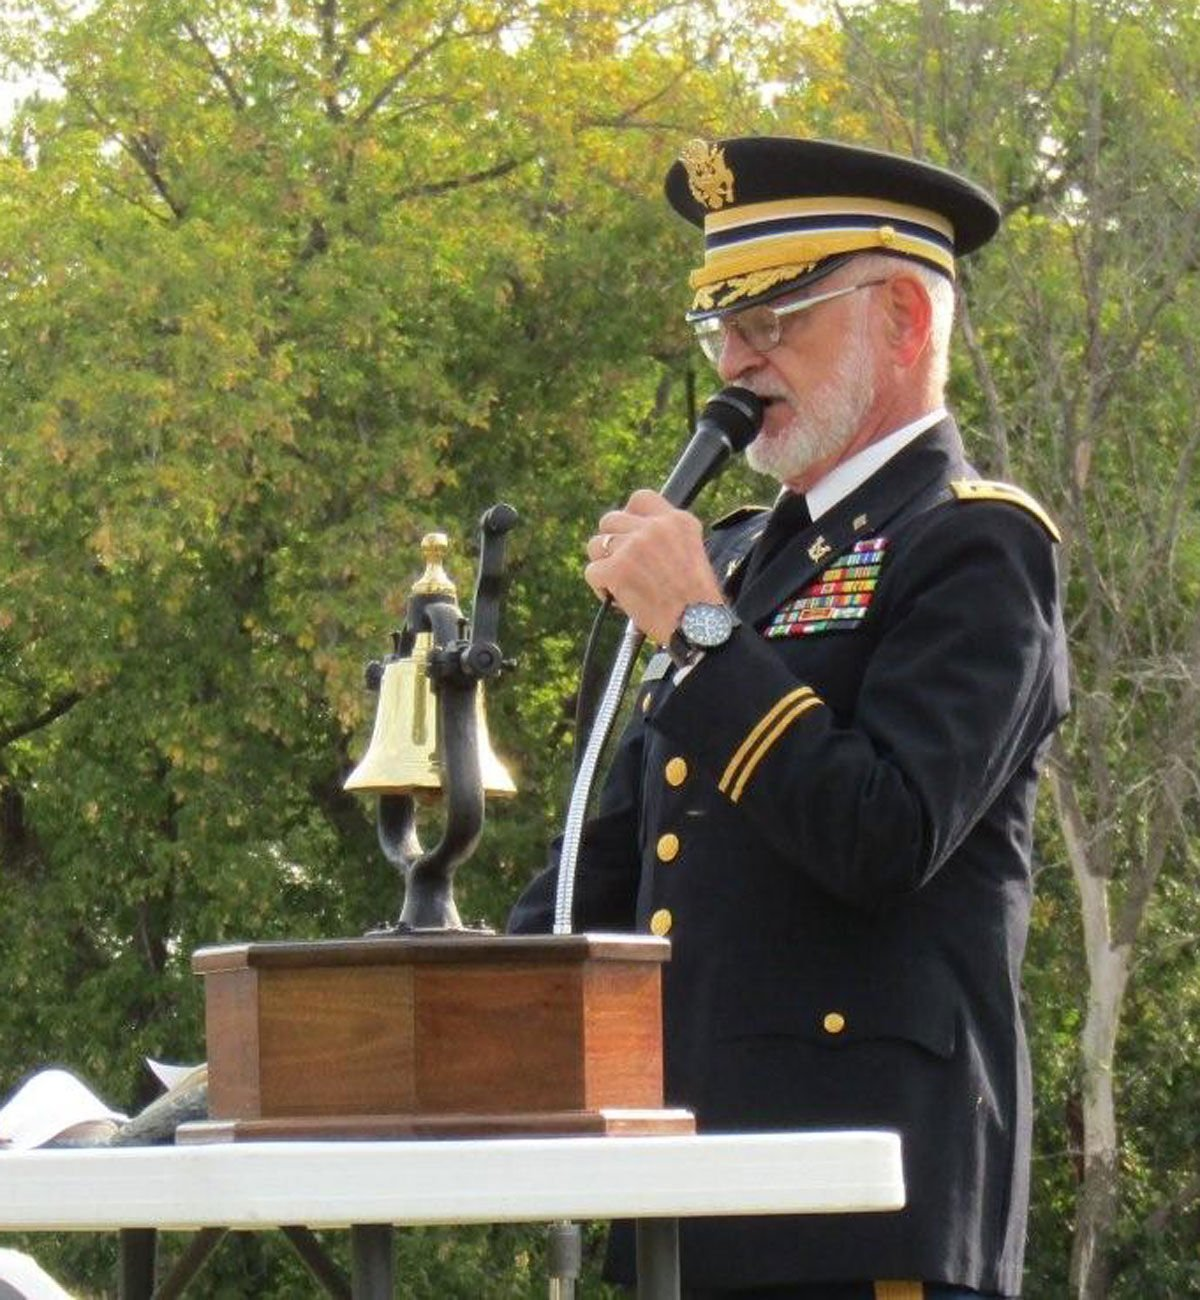 Army veteran Jim Smith shared some words from the American Legion National Commander.